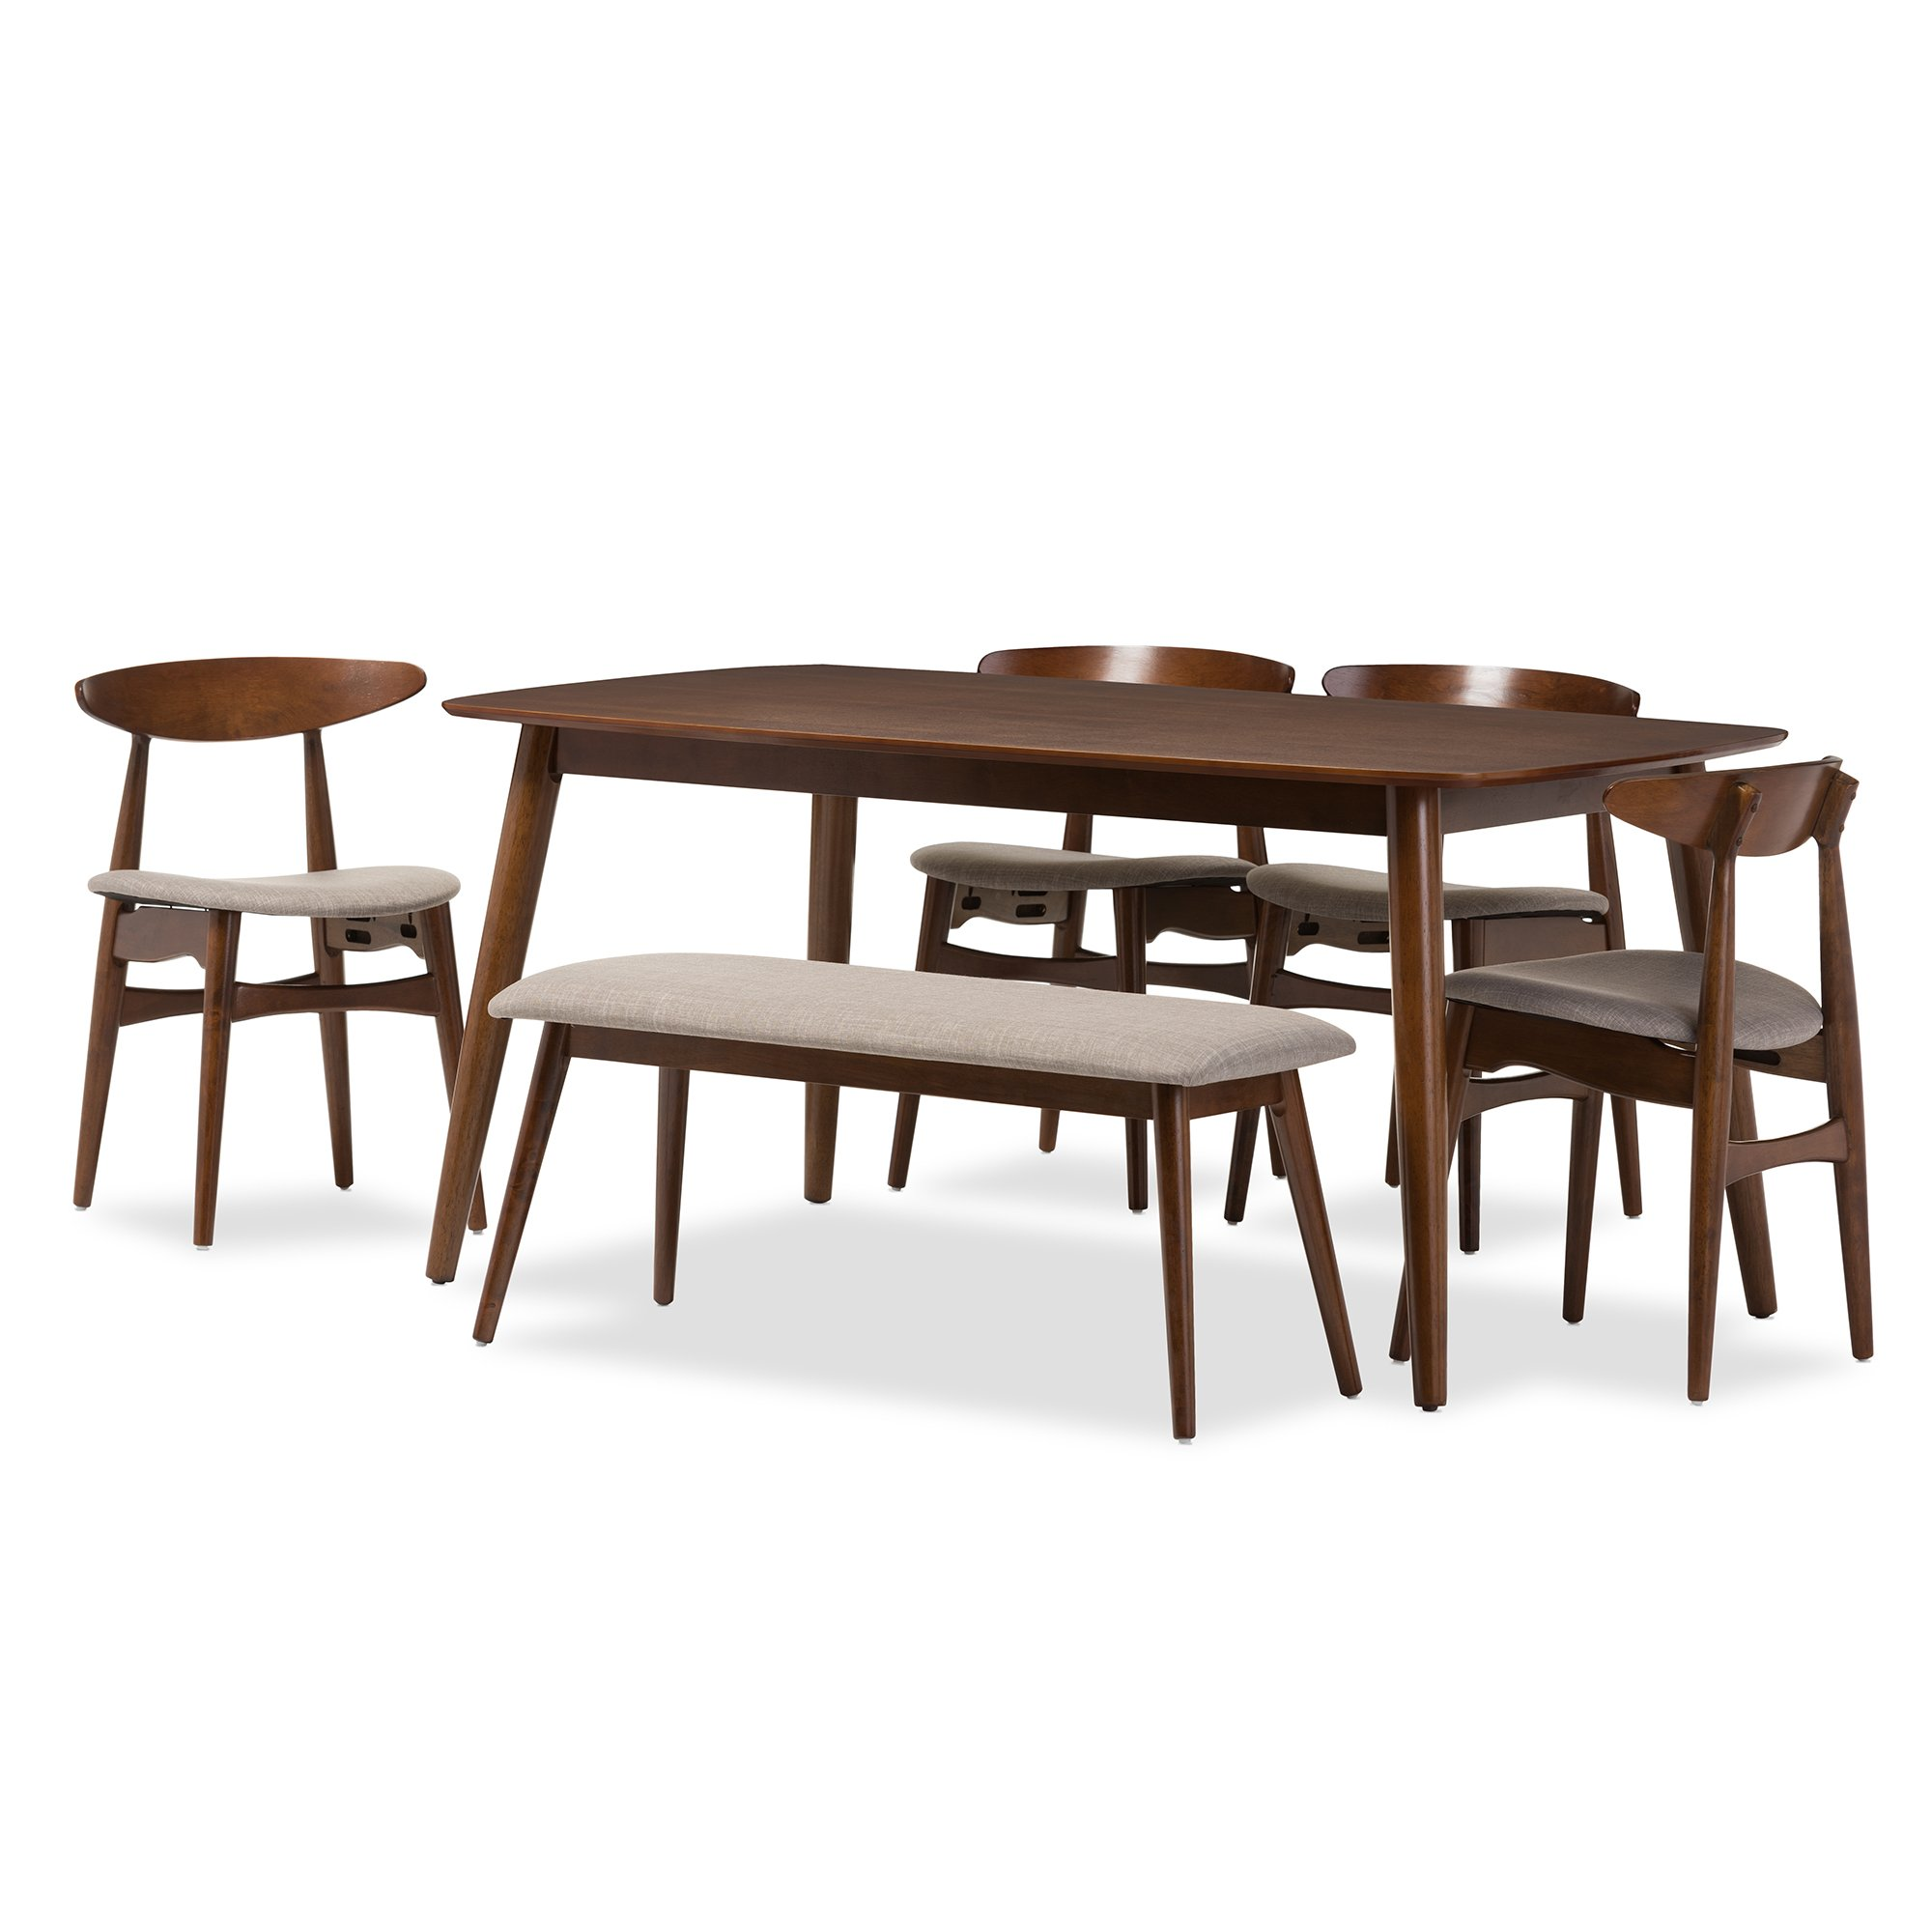 Astonishing Juliette 6 Piece Rectangular Dining Table Set By Baxton Studio Gmtry Best Dining Table And Chair Ideas Images Gmtryco